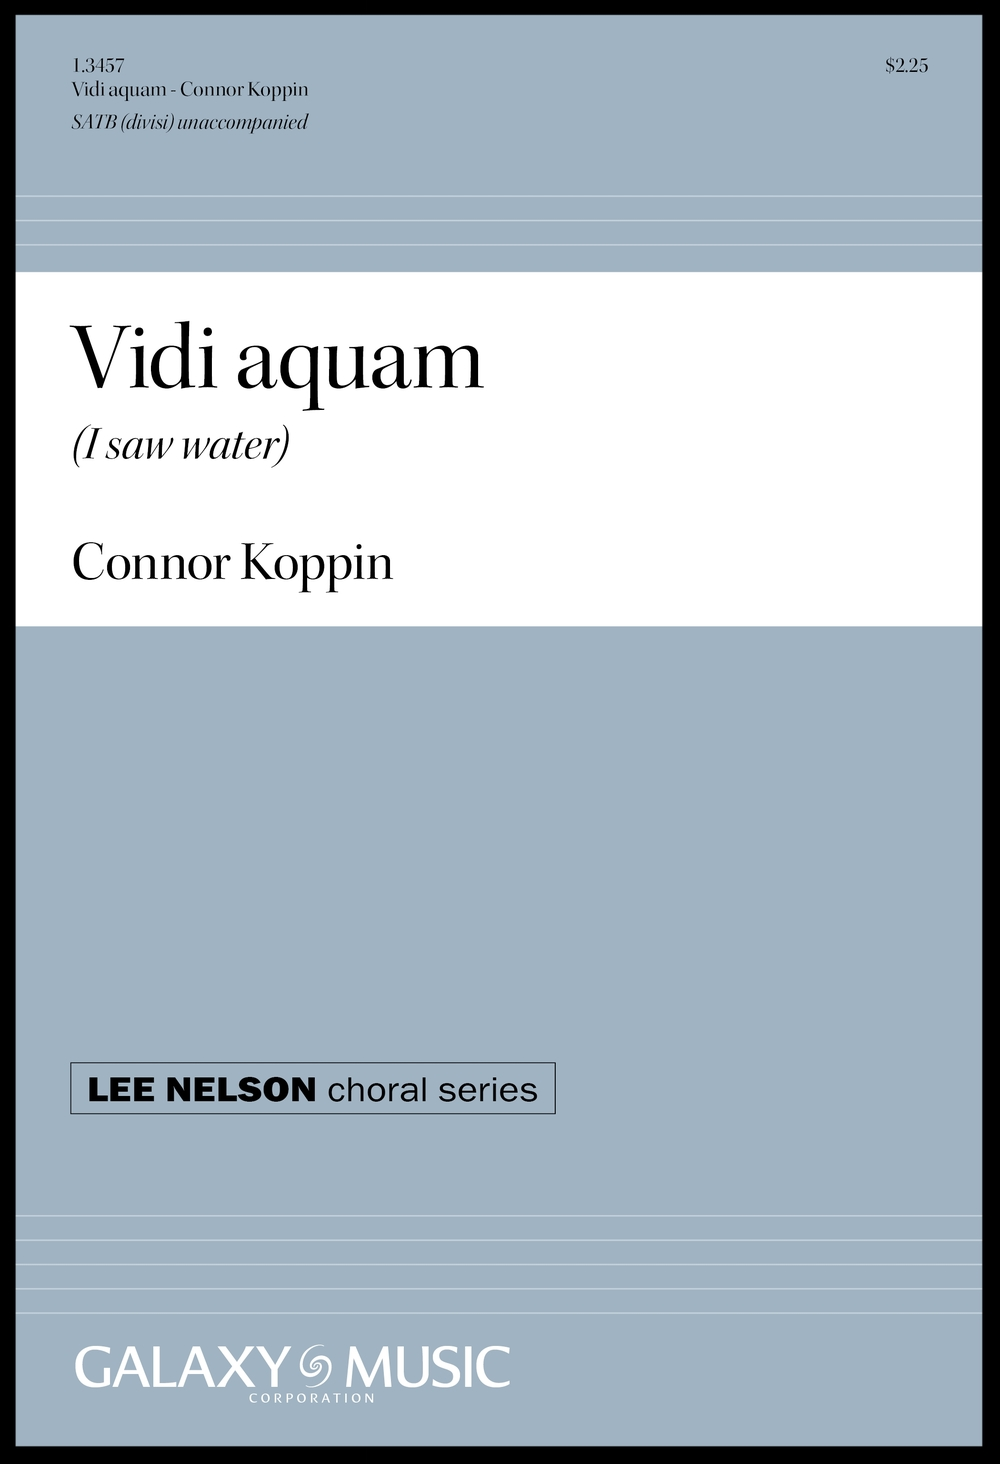 Vidi Aquam cover image.jpg